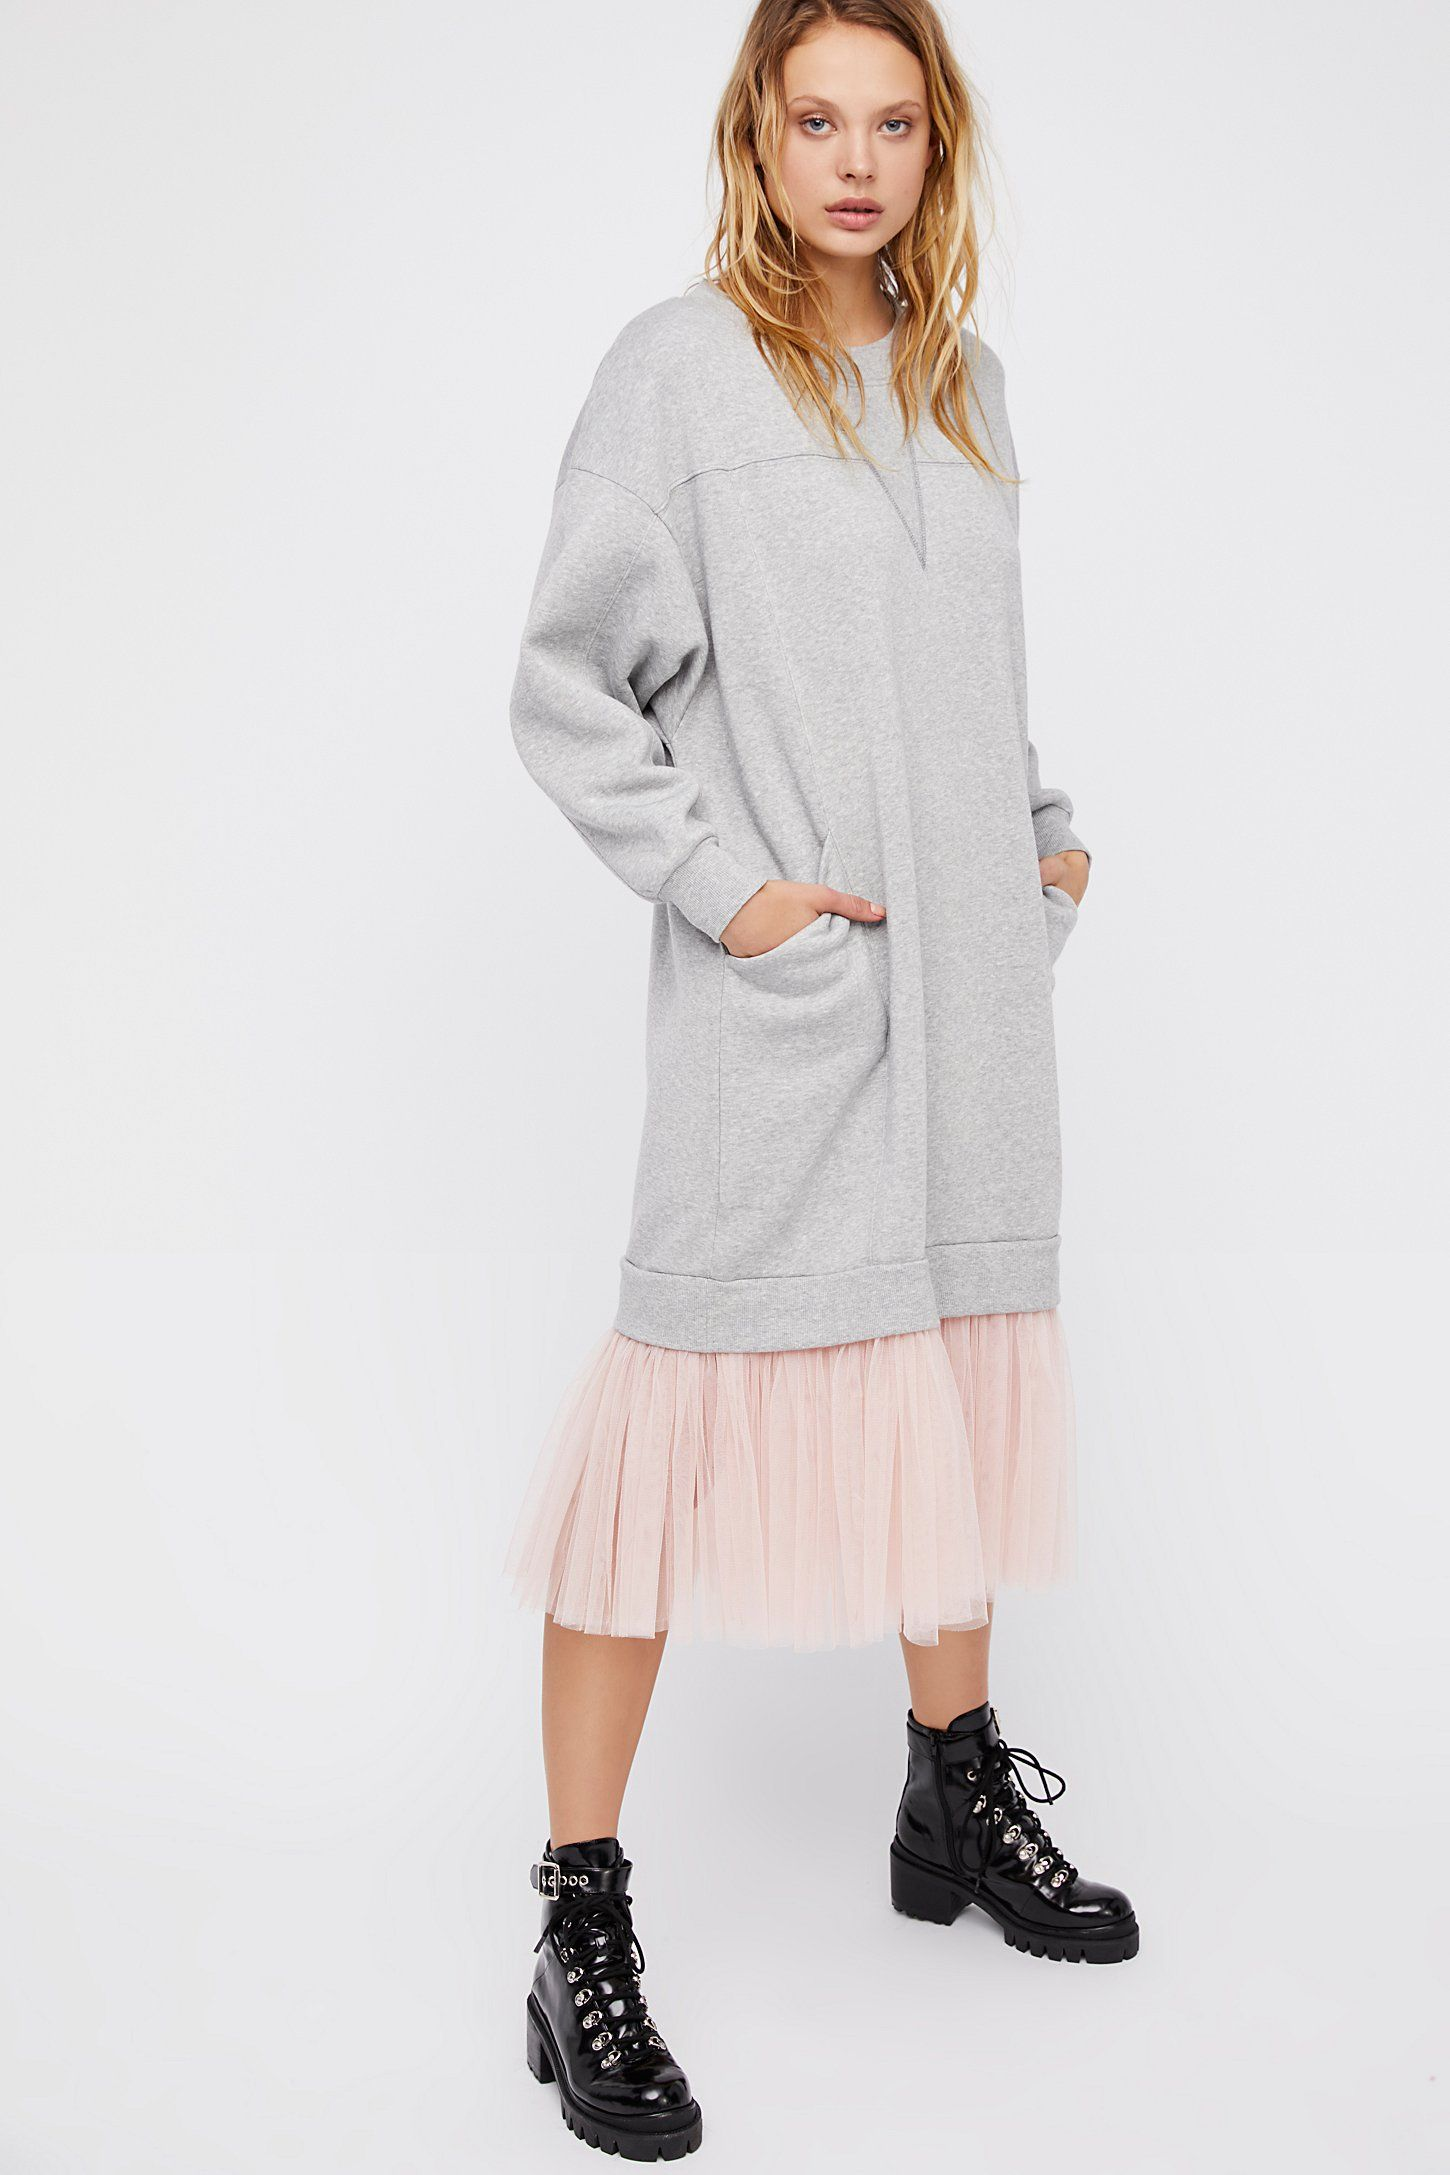 01f1f83668 Shop our Too Too Much Pullover at FreePeople.com. Share style pics with FP  Me